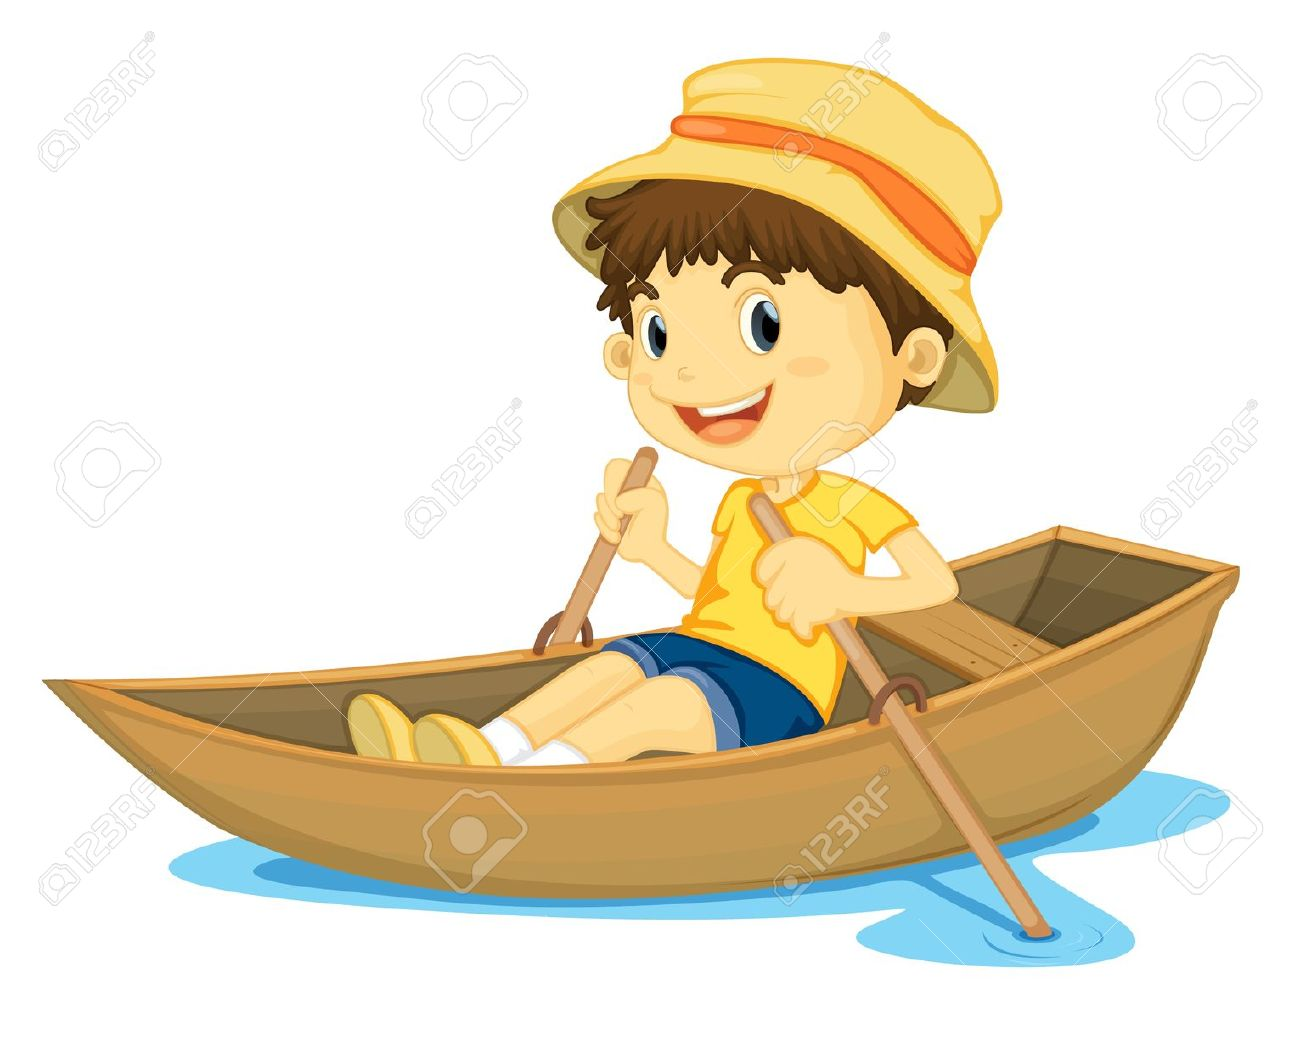 Cartoon row boat clipart - ClipartFest vector library download